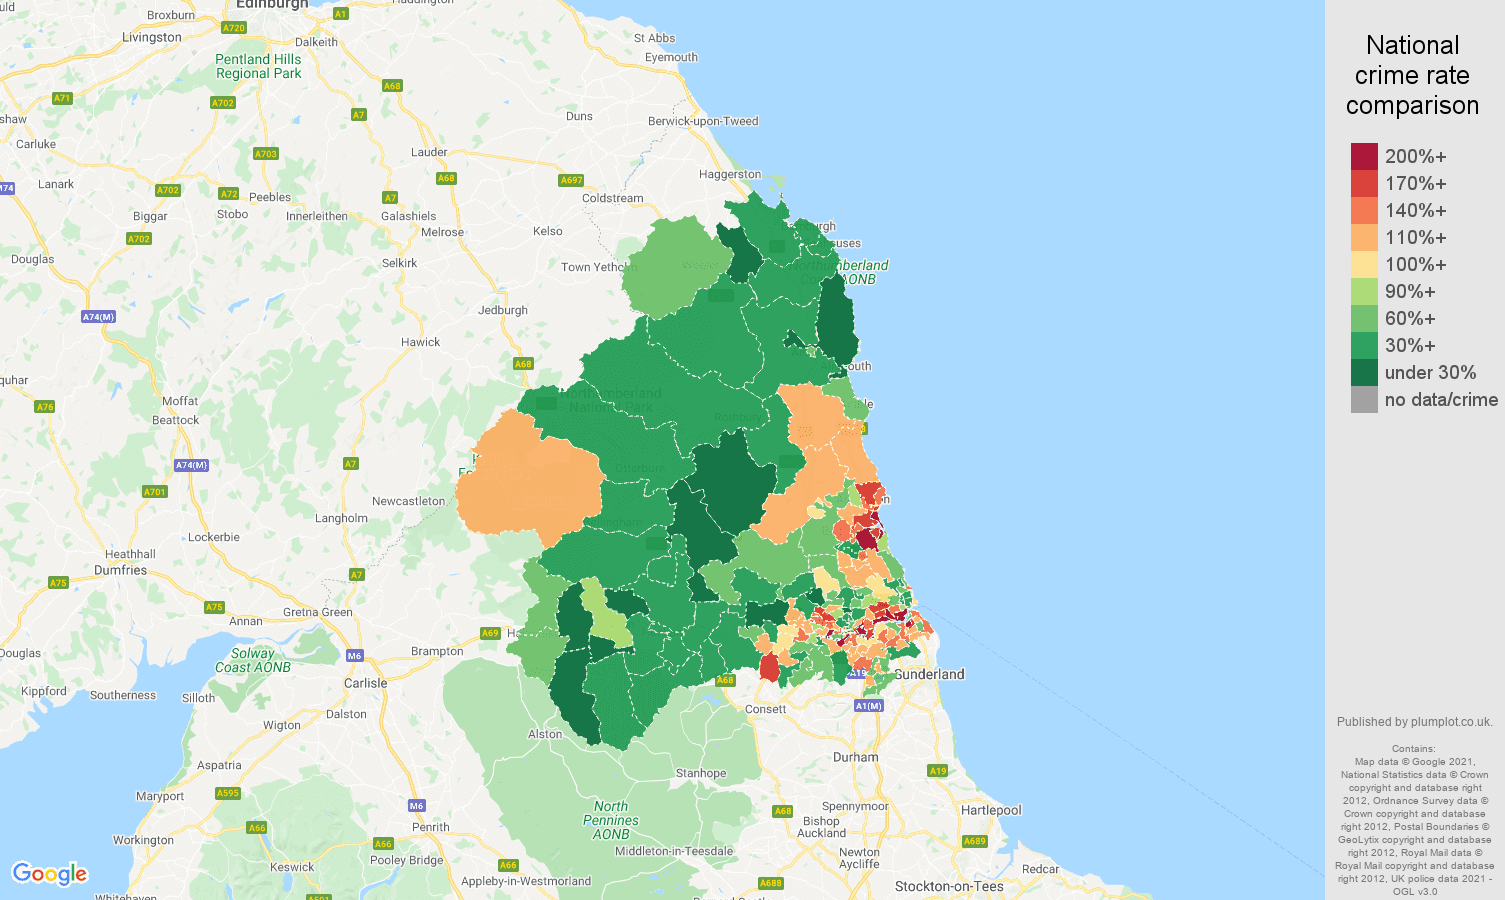 Map Of Uk Newcastle.Newcastle Upon Tyne Violent Crime Statistics In Maps And Graphs